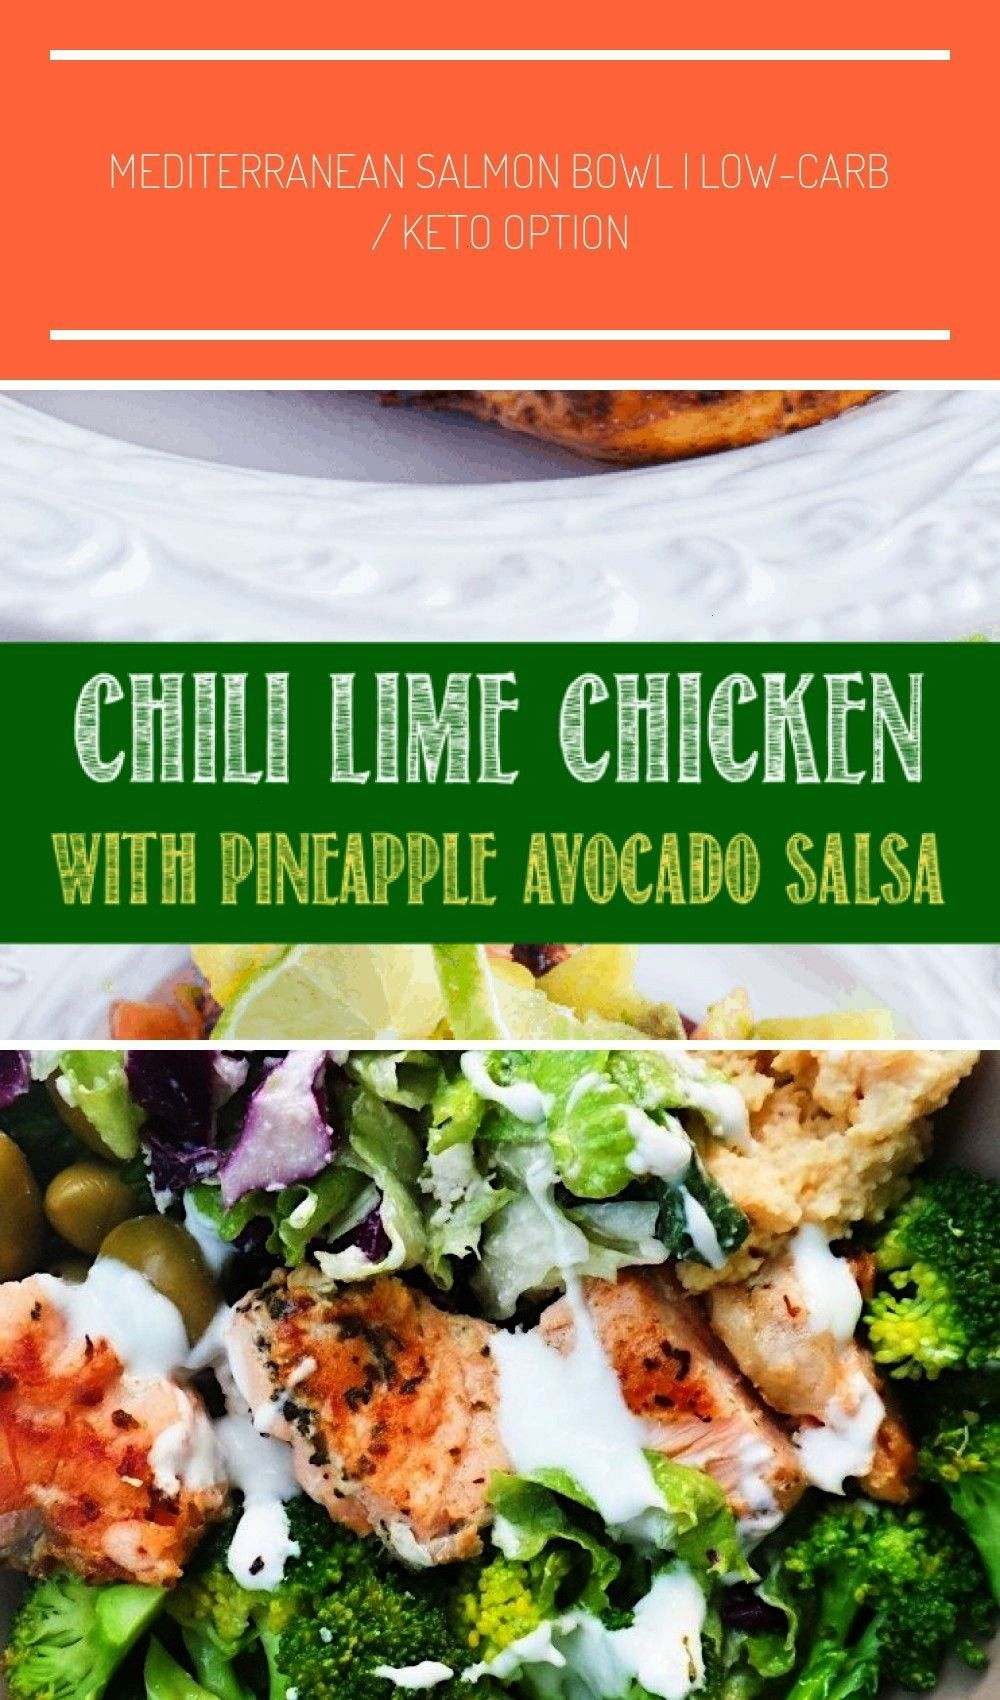 Lime Chicken with Pineapple Avocado Salsa is a quick, easy, and healthy dinner recipe thats sure t